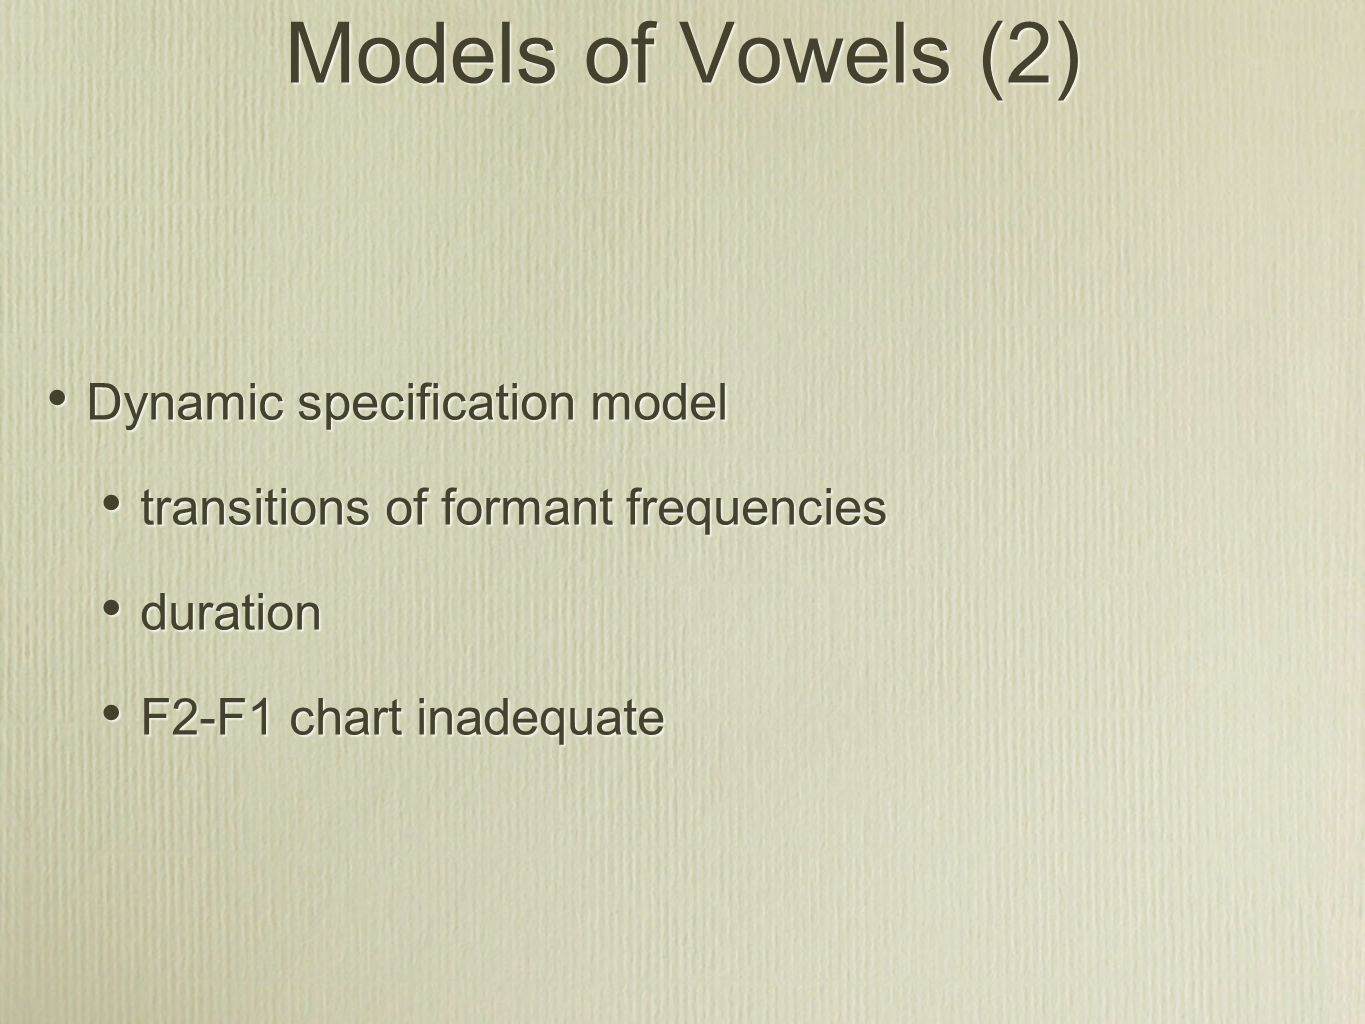 Models of Vowels (2) Dynamic specification model transitions of formant frequencies duration F2-F1 chart inadequate Dynamic specification model transitions of formant frequencies duration F2-F1 chart inadequate